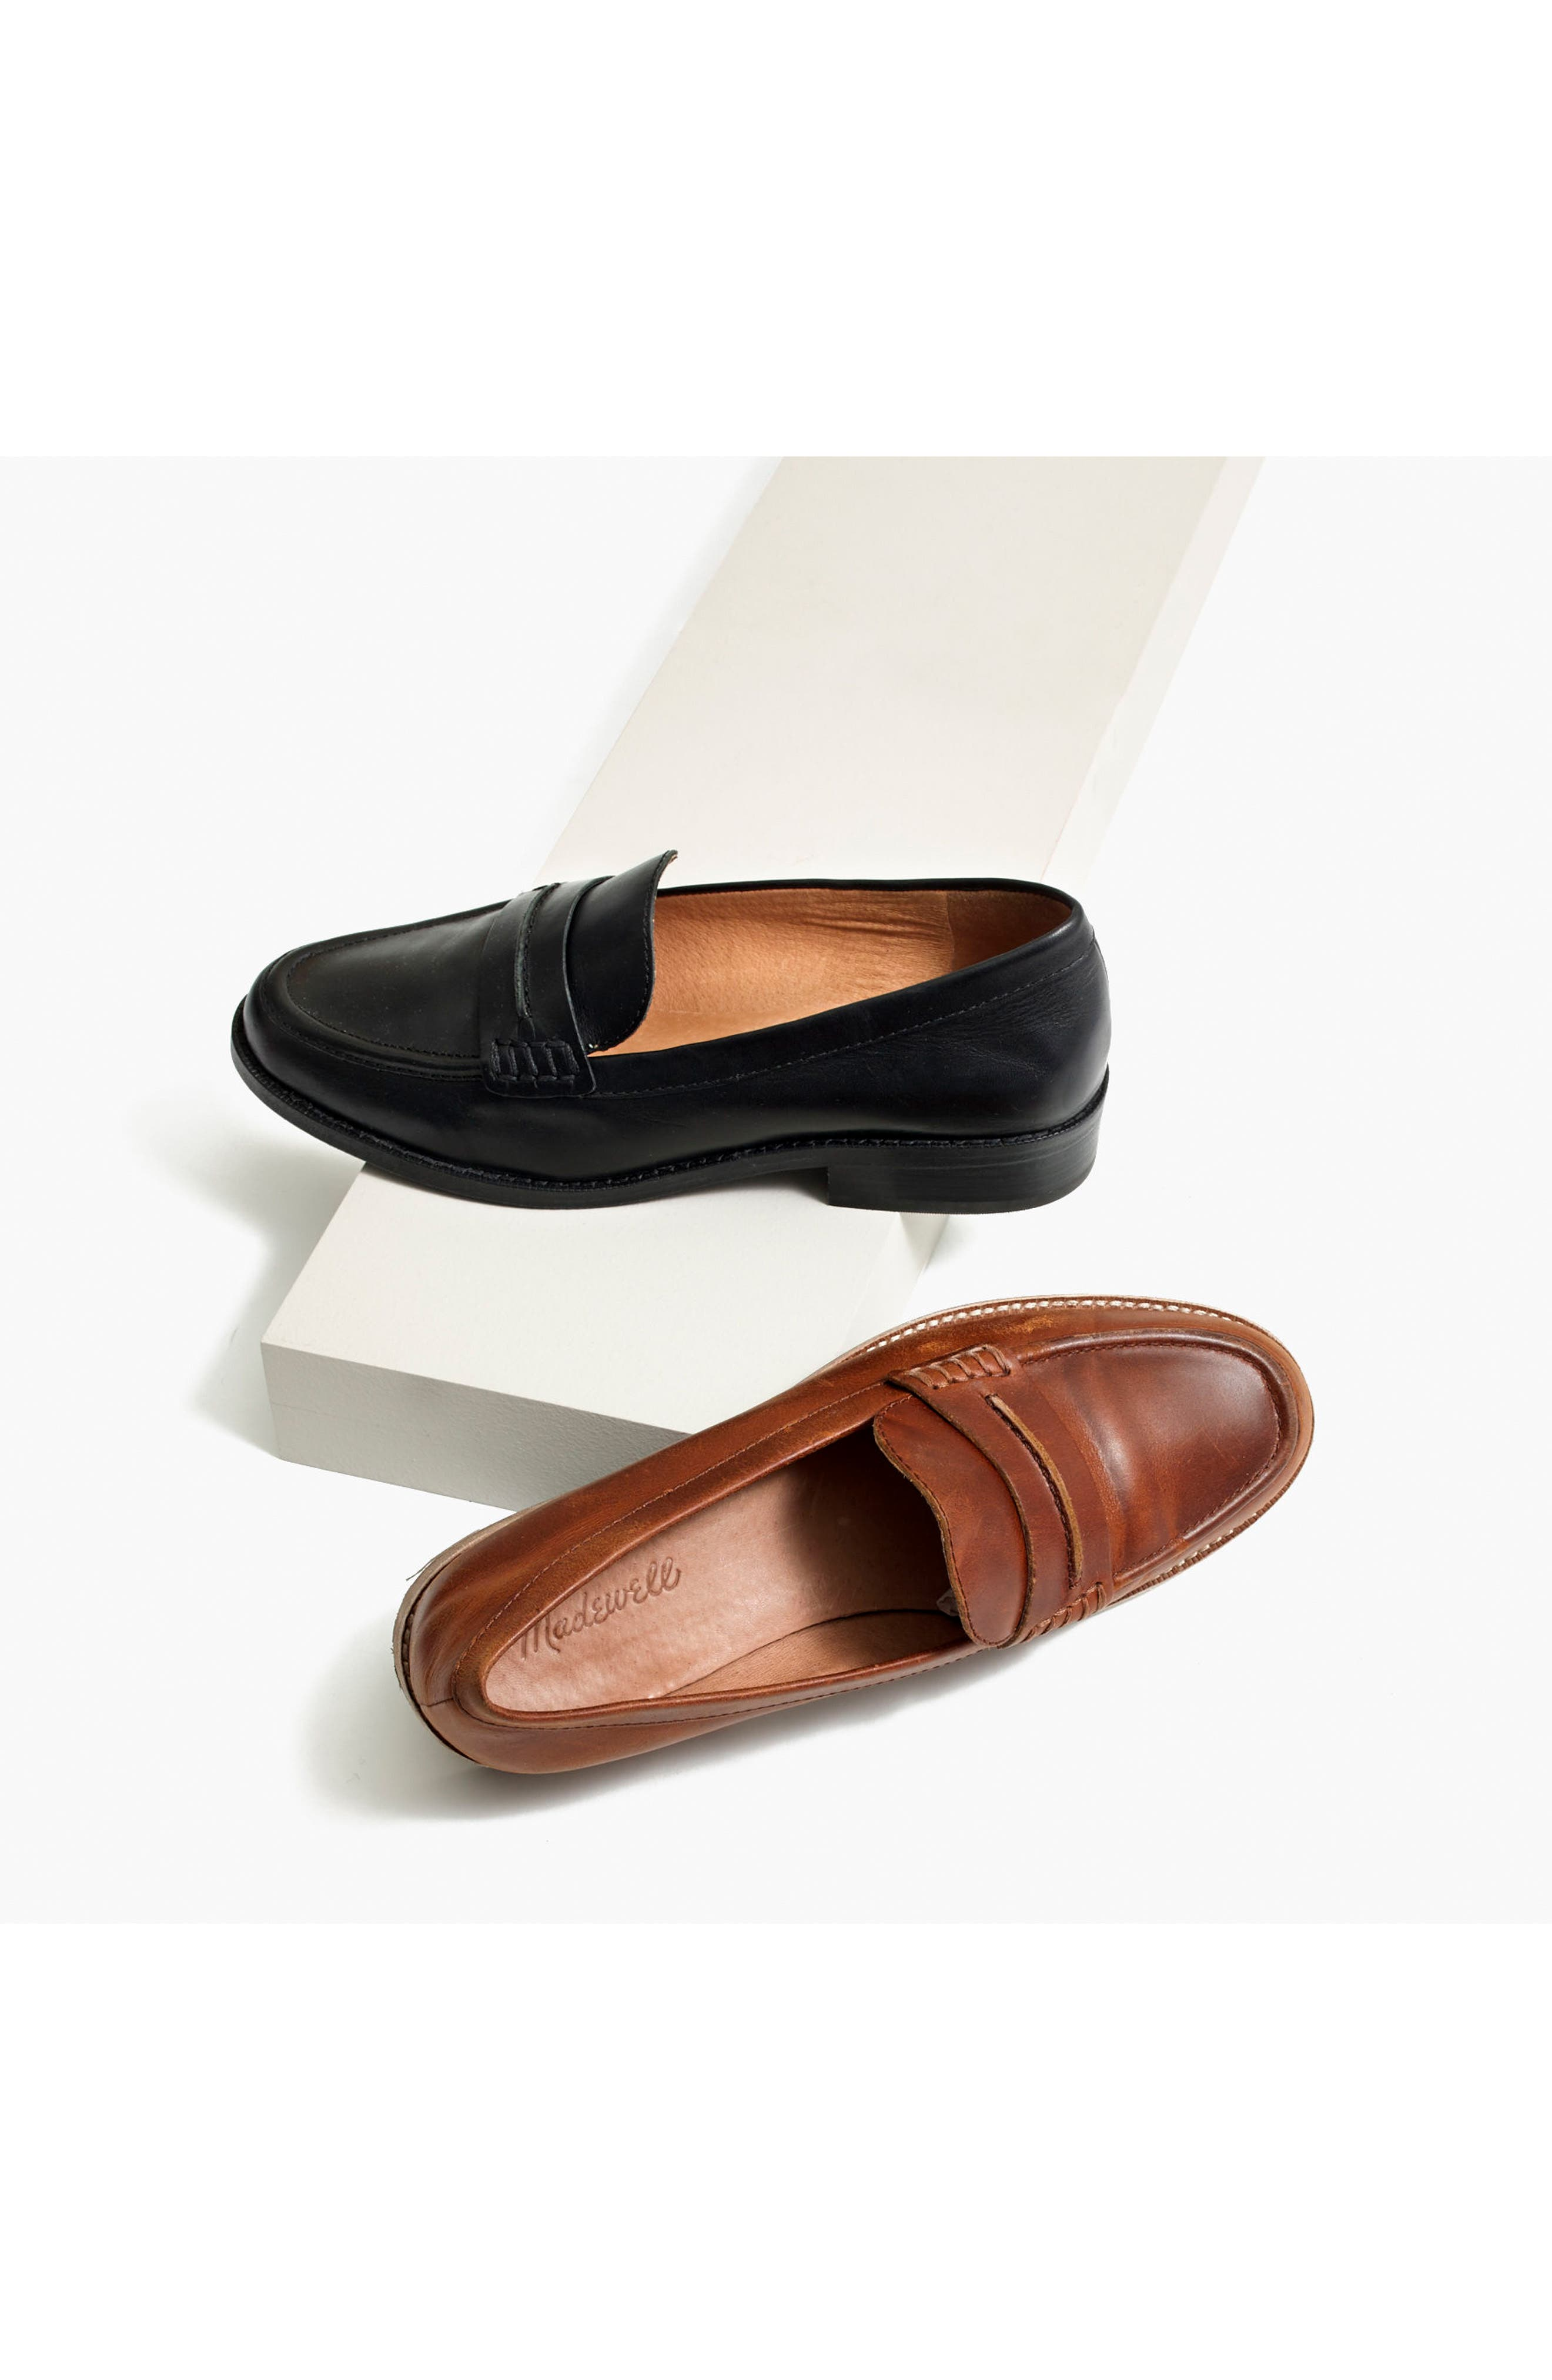 MADEWELL, The Elinor Loafer, Alternate thumbnail 7, color, 001